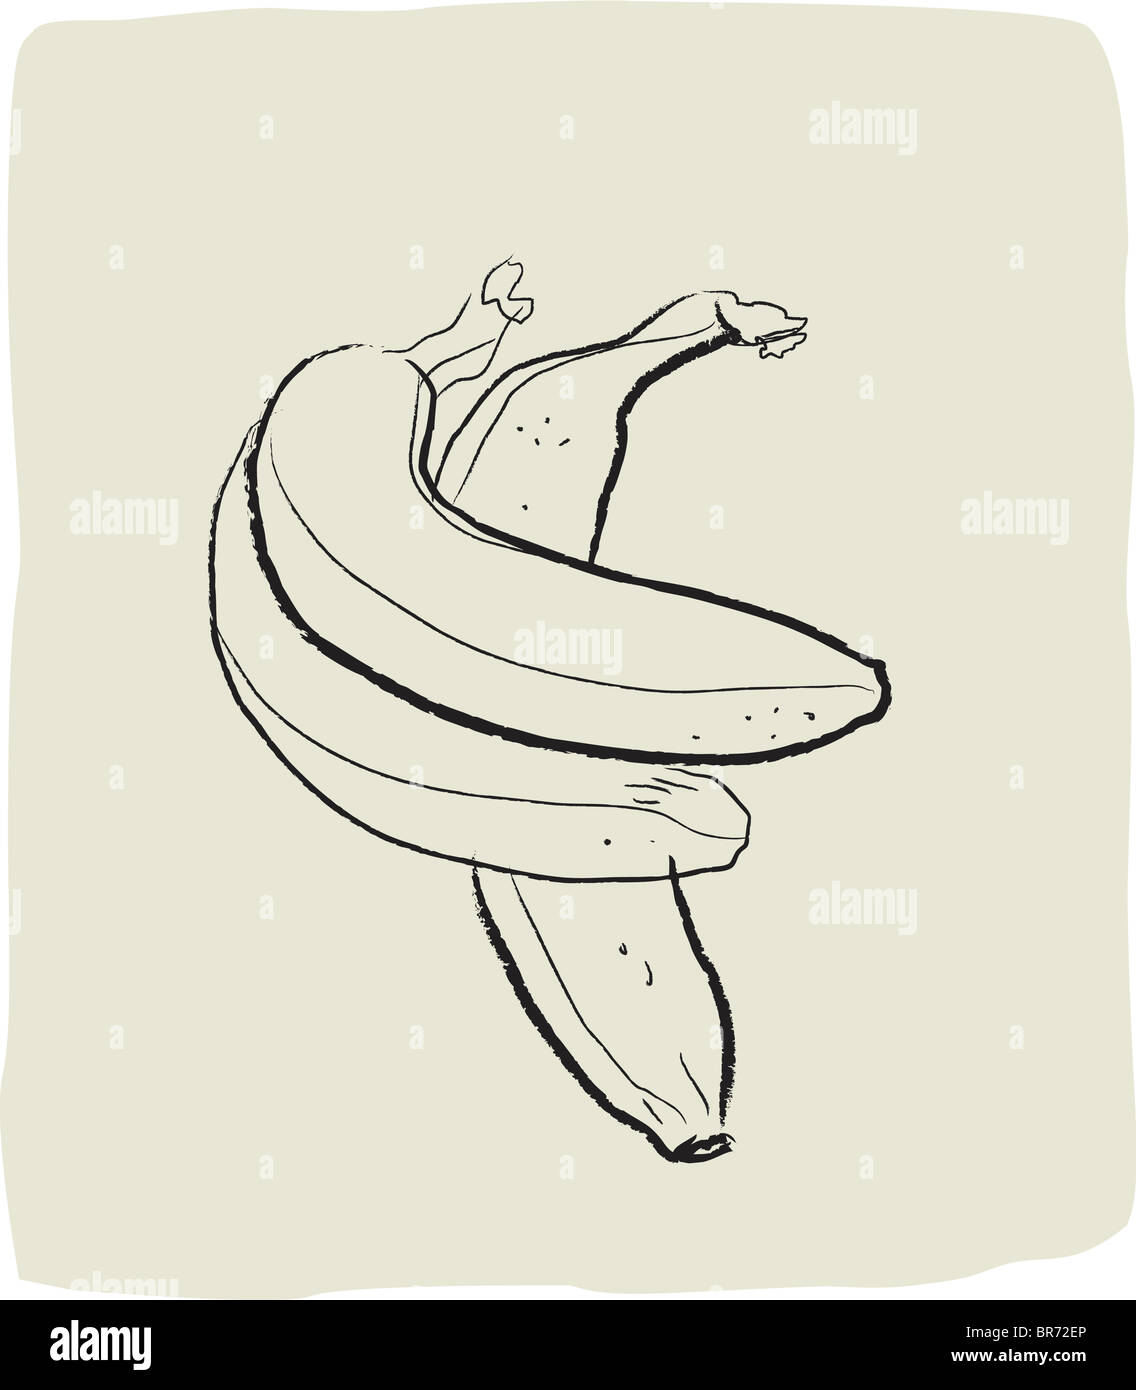 A textured line drawing of bananas - Stock Image